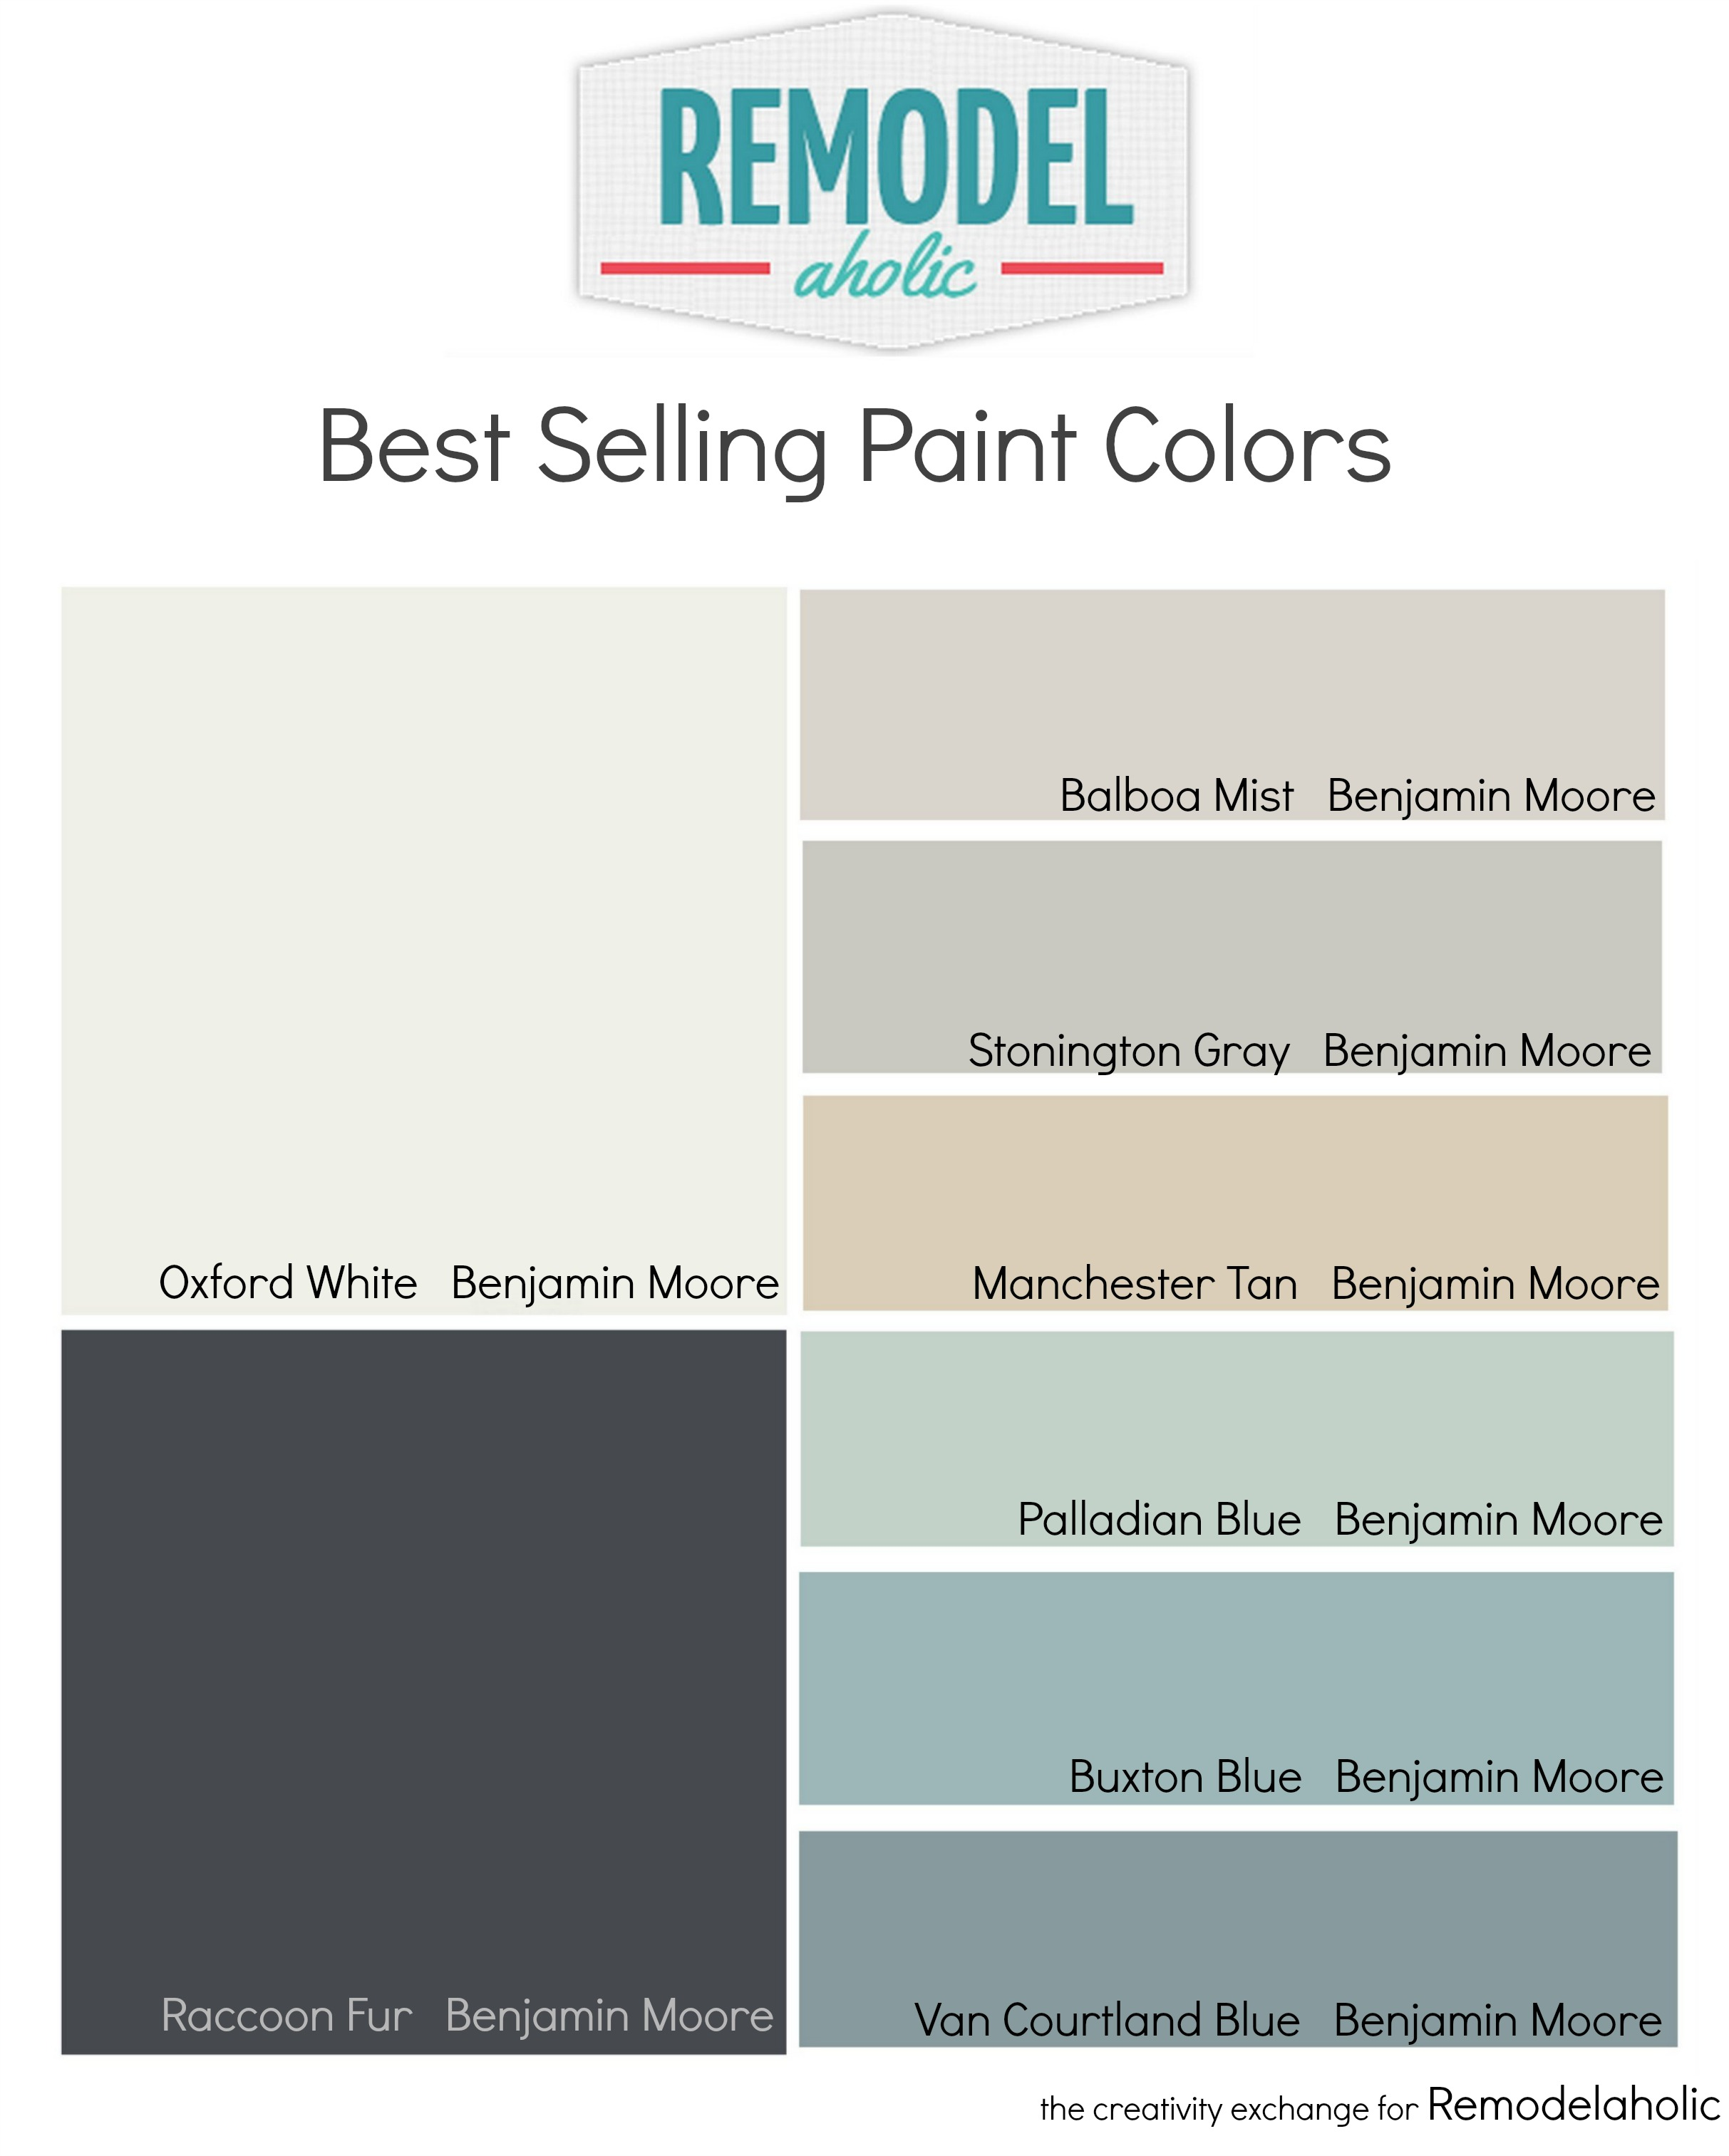 Most popular living room paint colors 2014 2017 2018 for Top 10 living room paint colors 2014